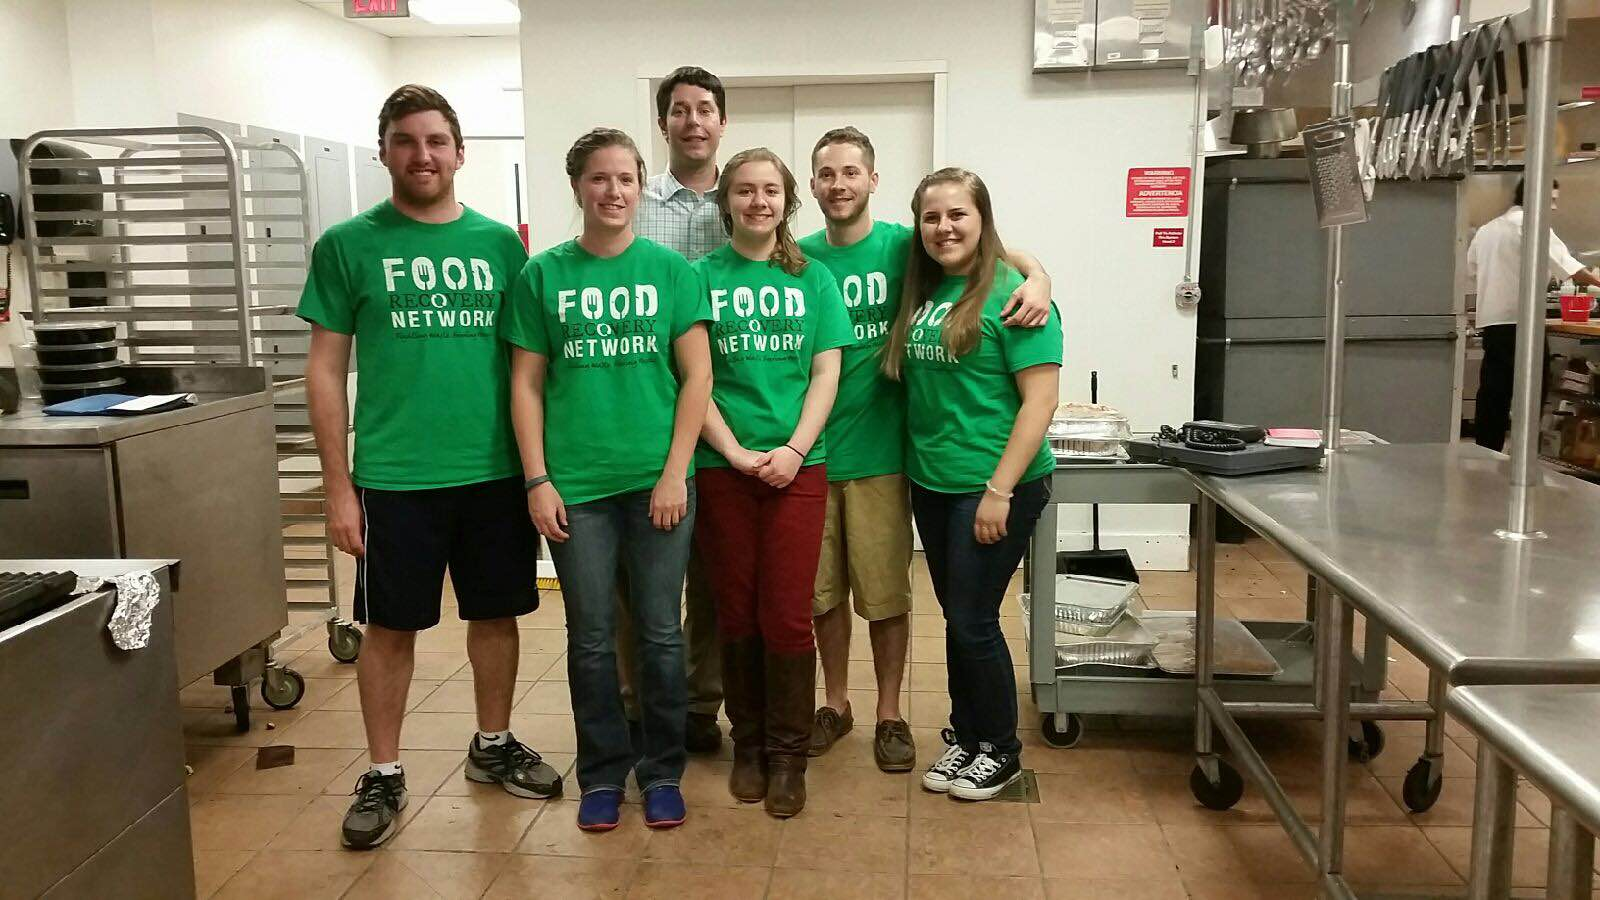 Roger Williams University's chapter takes a break from a recovery to snap a photo. (From left to right: Evan Cassani, Katie Boyd, Josh Henessey (food services director and chapter advisor), Kate Gladsky, Trevor Nelson, and Kelsey Rogers)